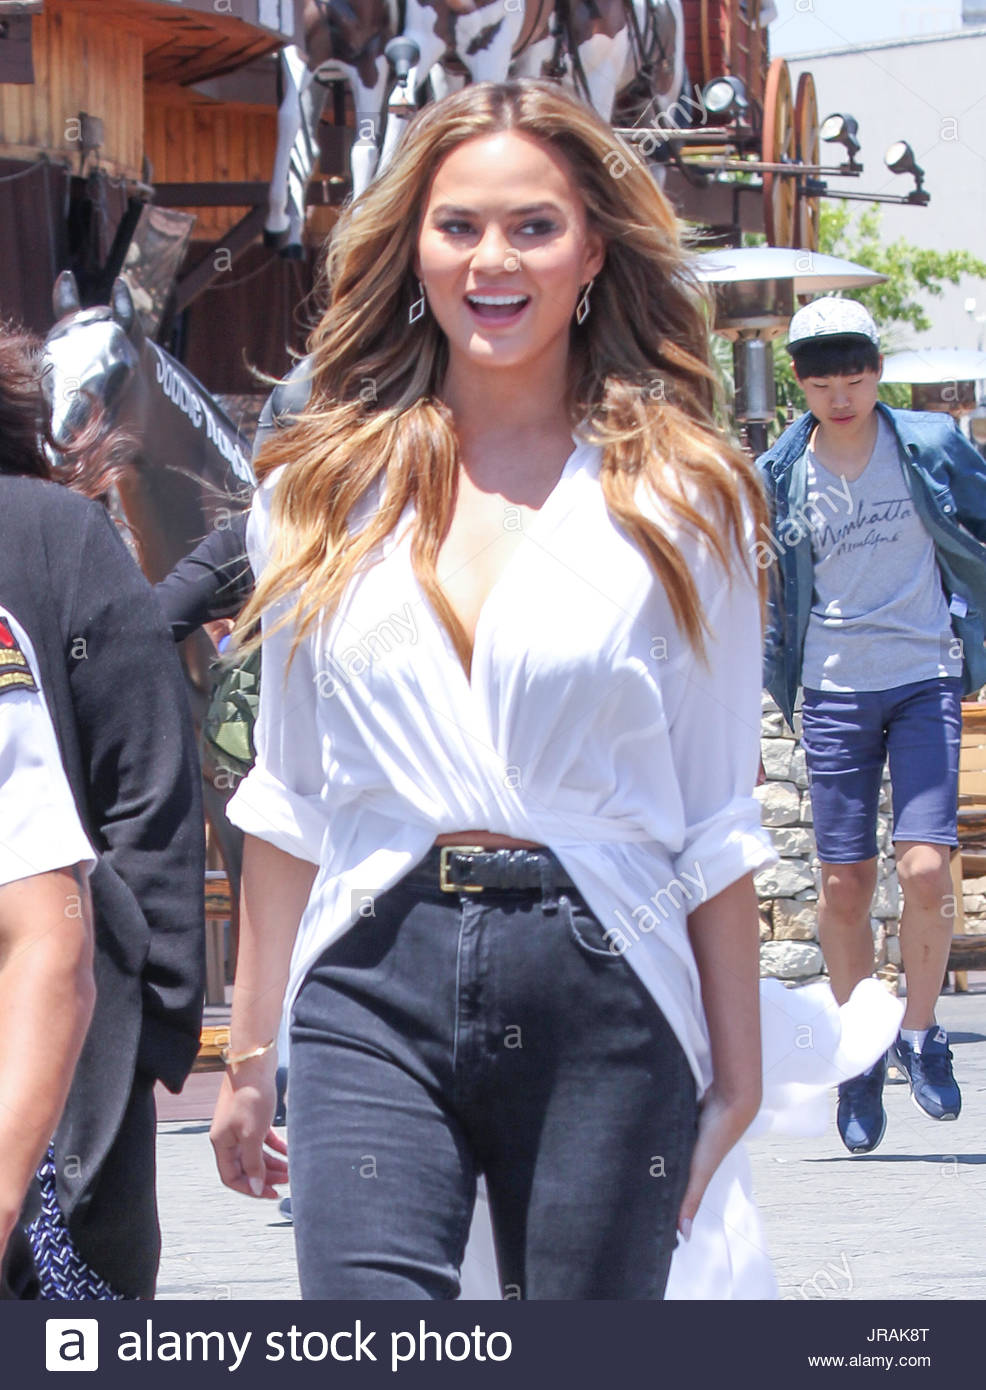 chrissy teigen sports illustrated swimsuit issue cover